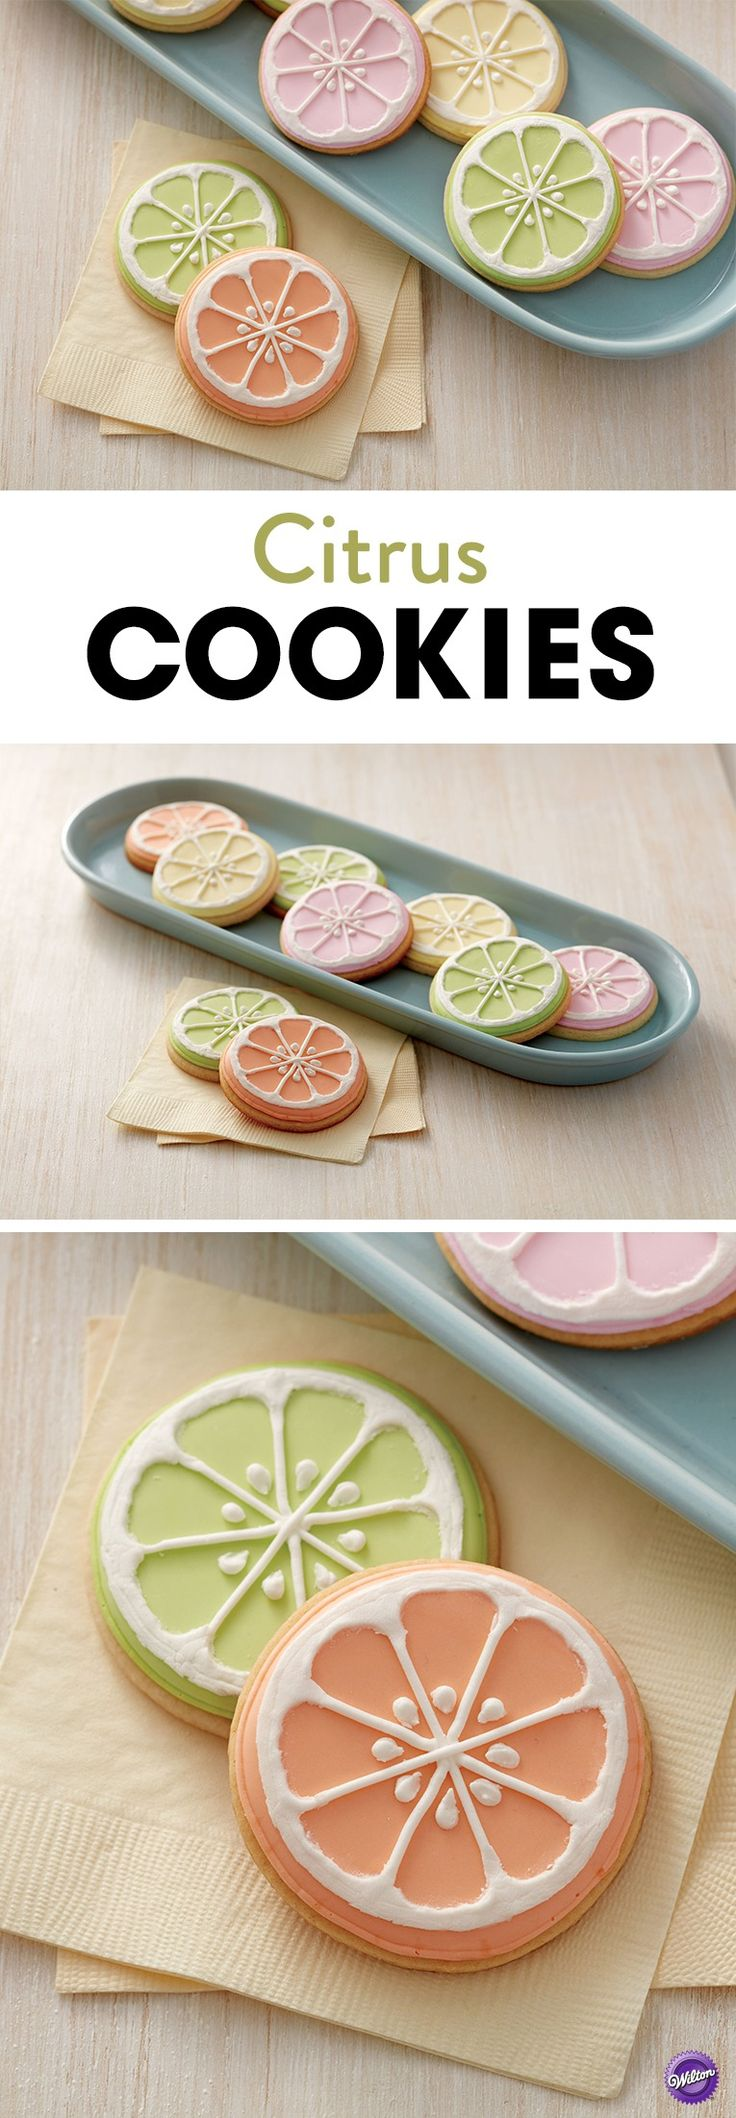 Learn how to make these cool citrus cookies that are perfect treats to serve at your spring or summer gatherings.